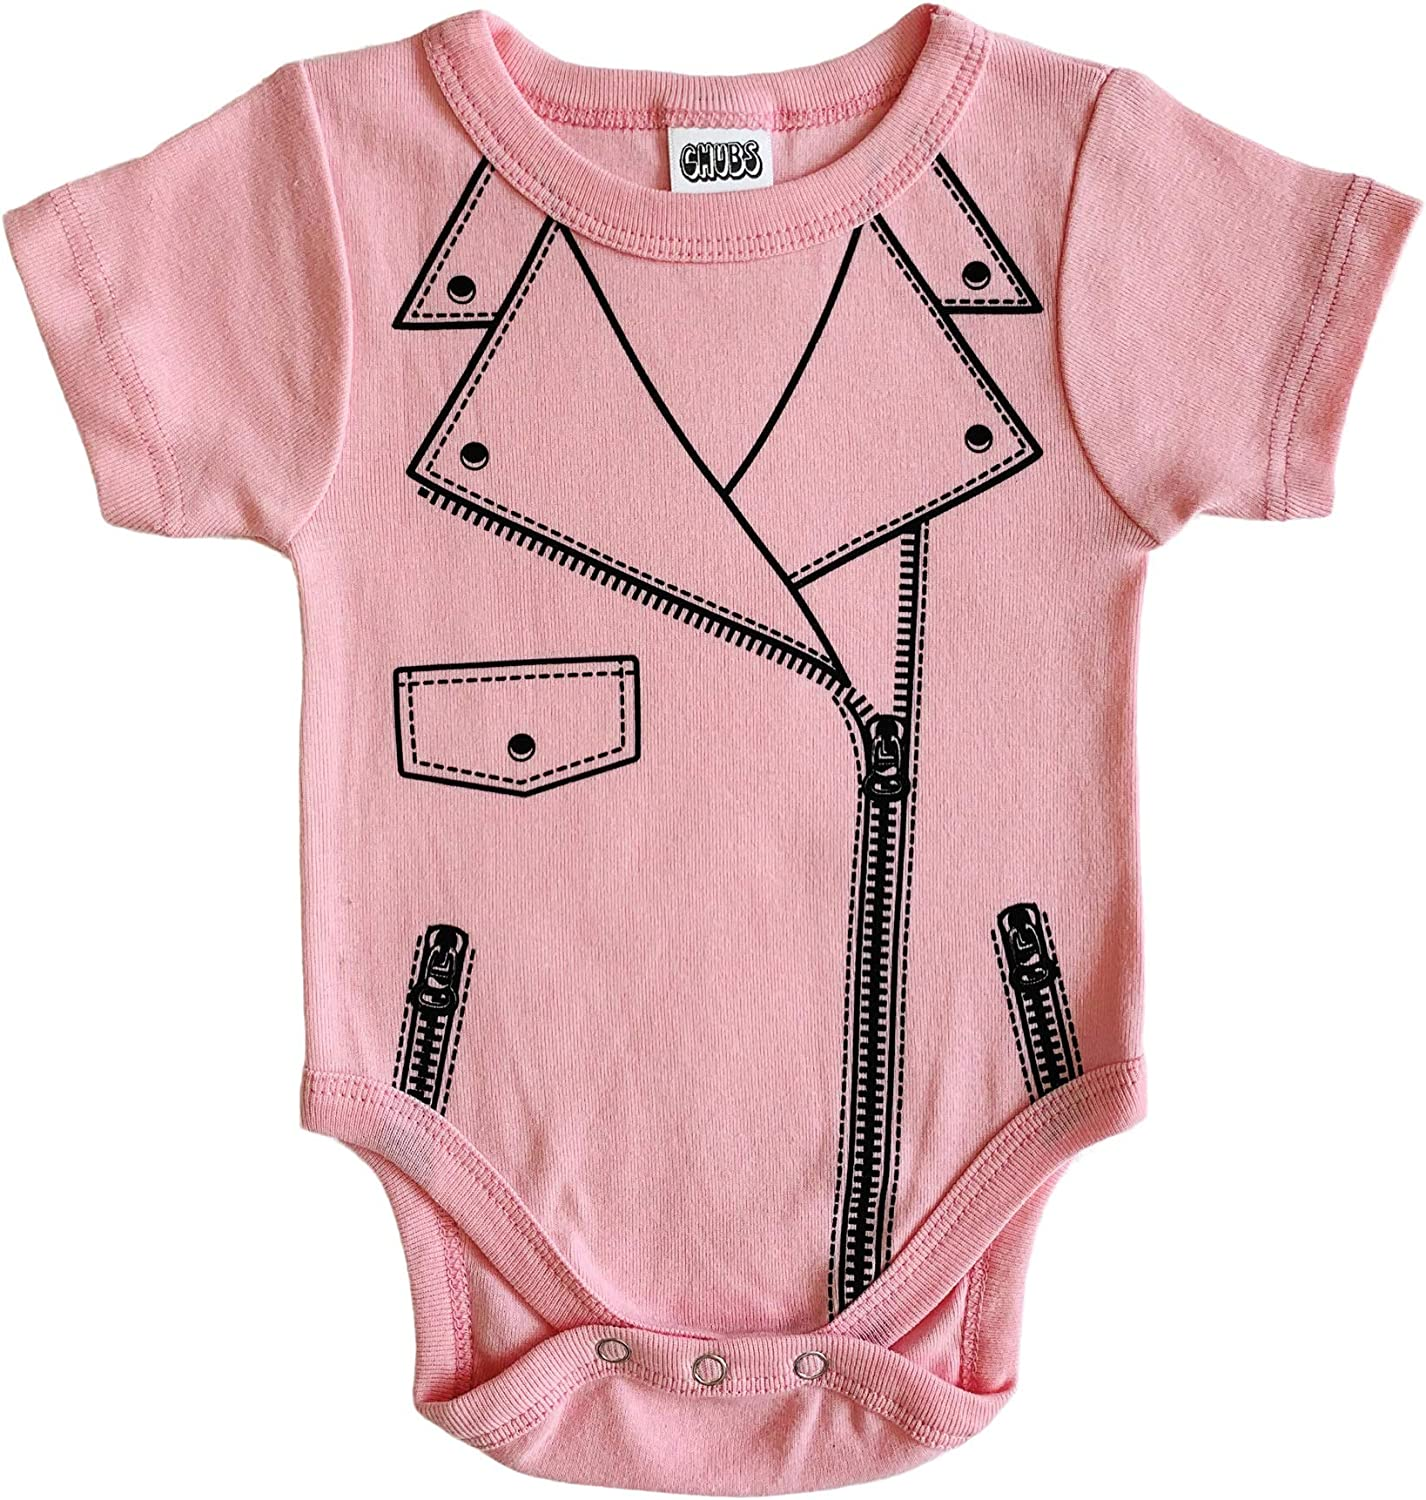 Daddy Play Games Baby Grow Vest Boys Girls Name Funny Bodysuit Baby Shower Gift